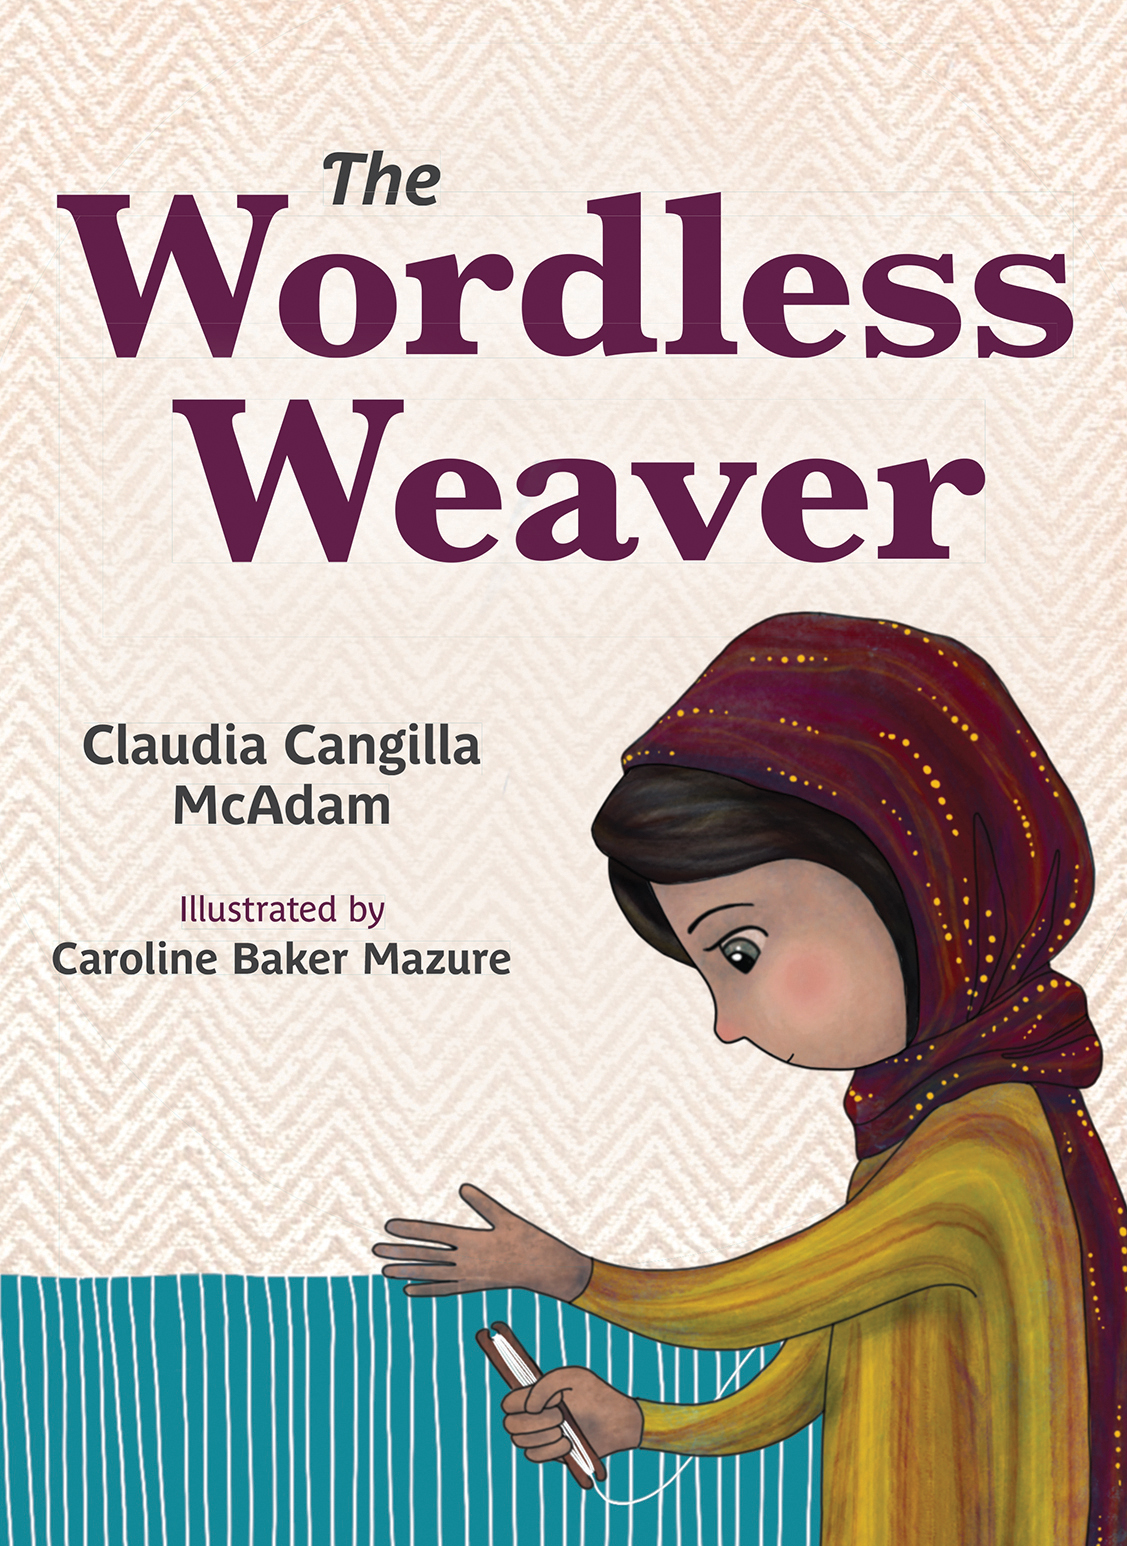 The Wordless Weaver / Claudia Cangilla McAdam